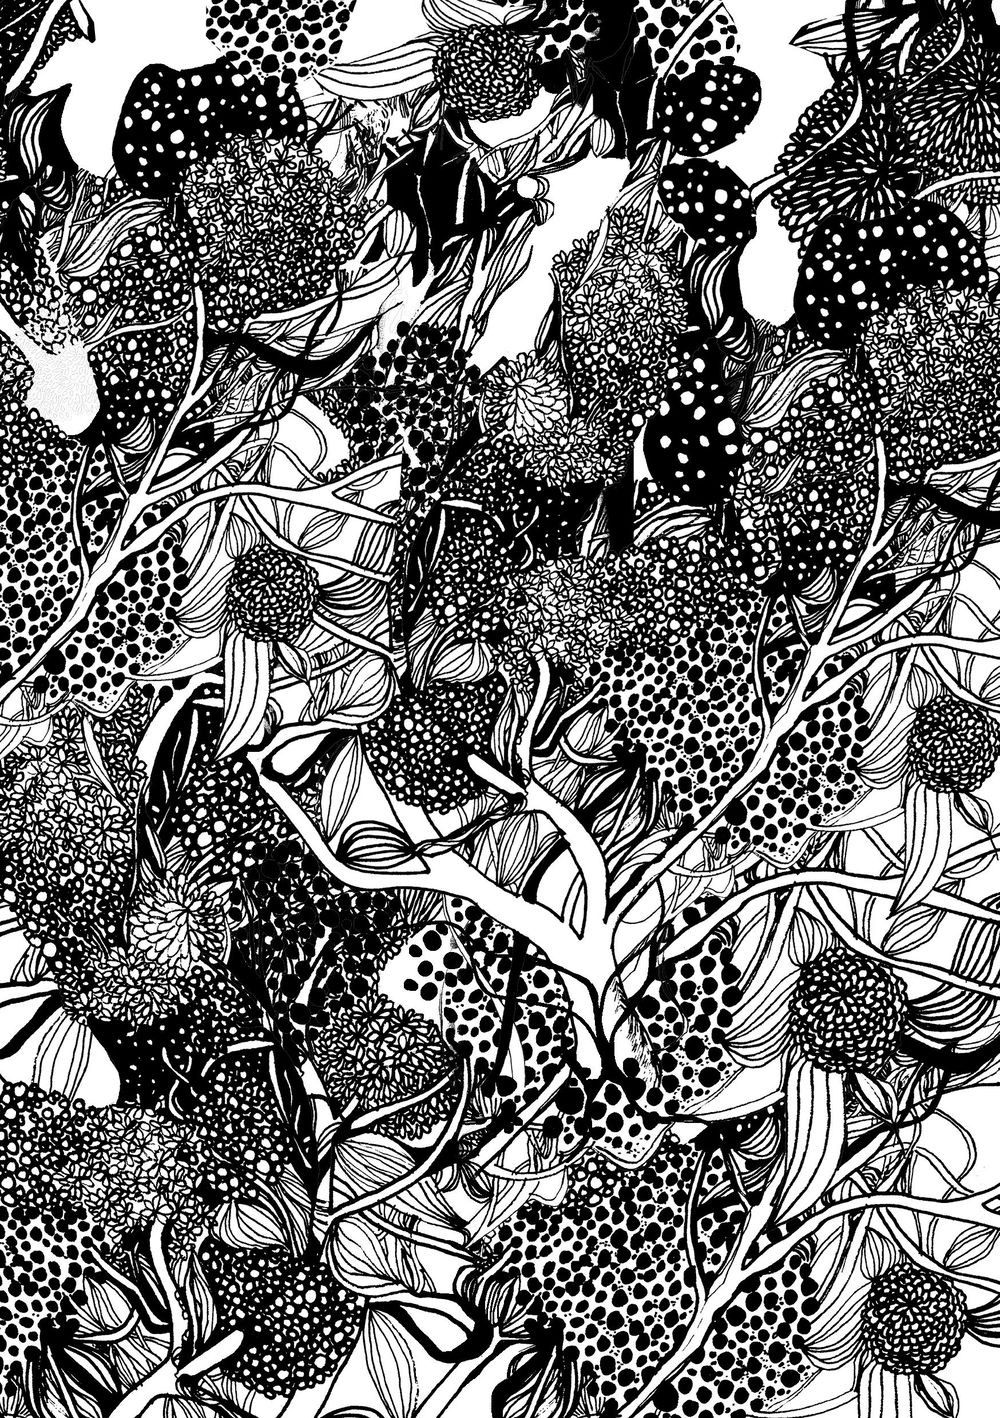 Undergrowth - image 1 - student project